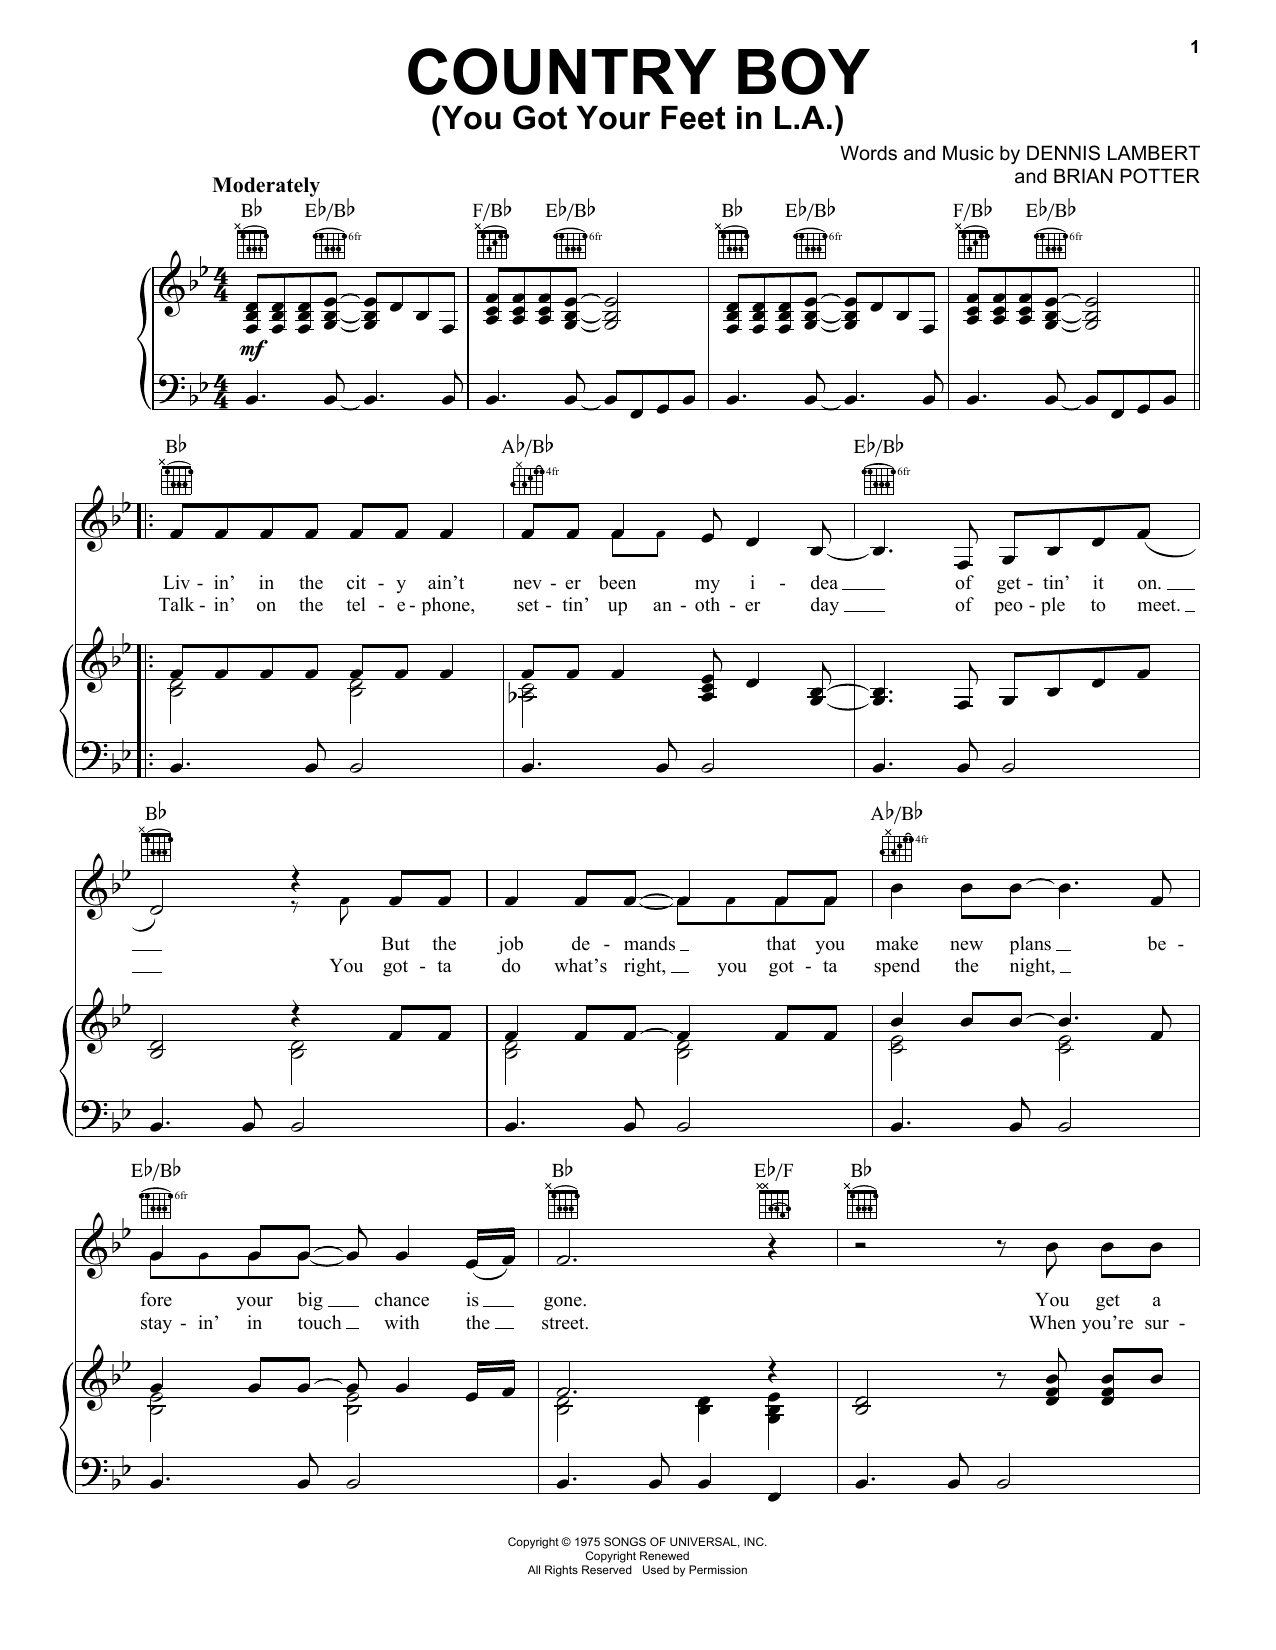 Glen Campbell Country Boy (You Got Your Feet In L.A.) sheet music notes and chords - download printable PDF.